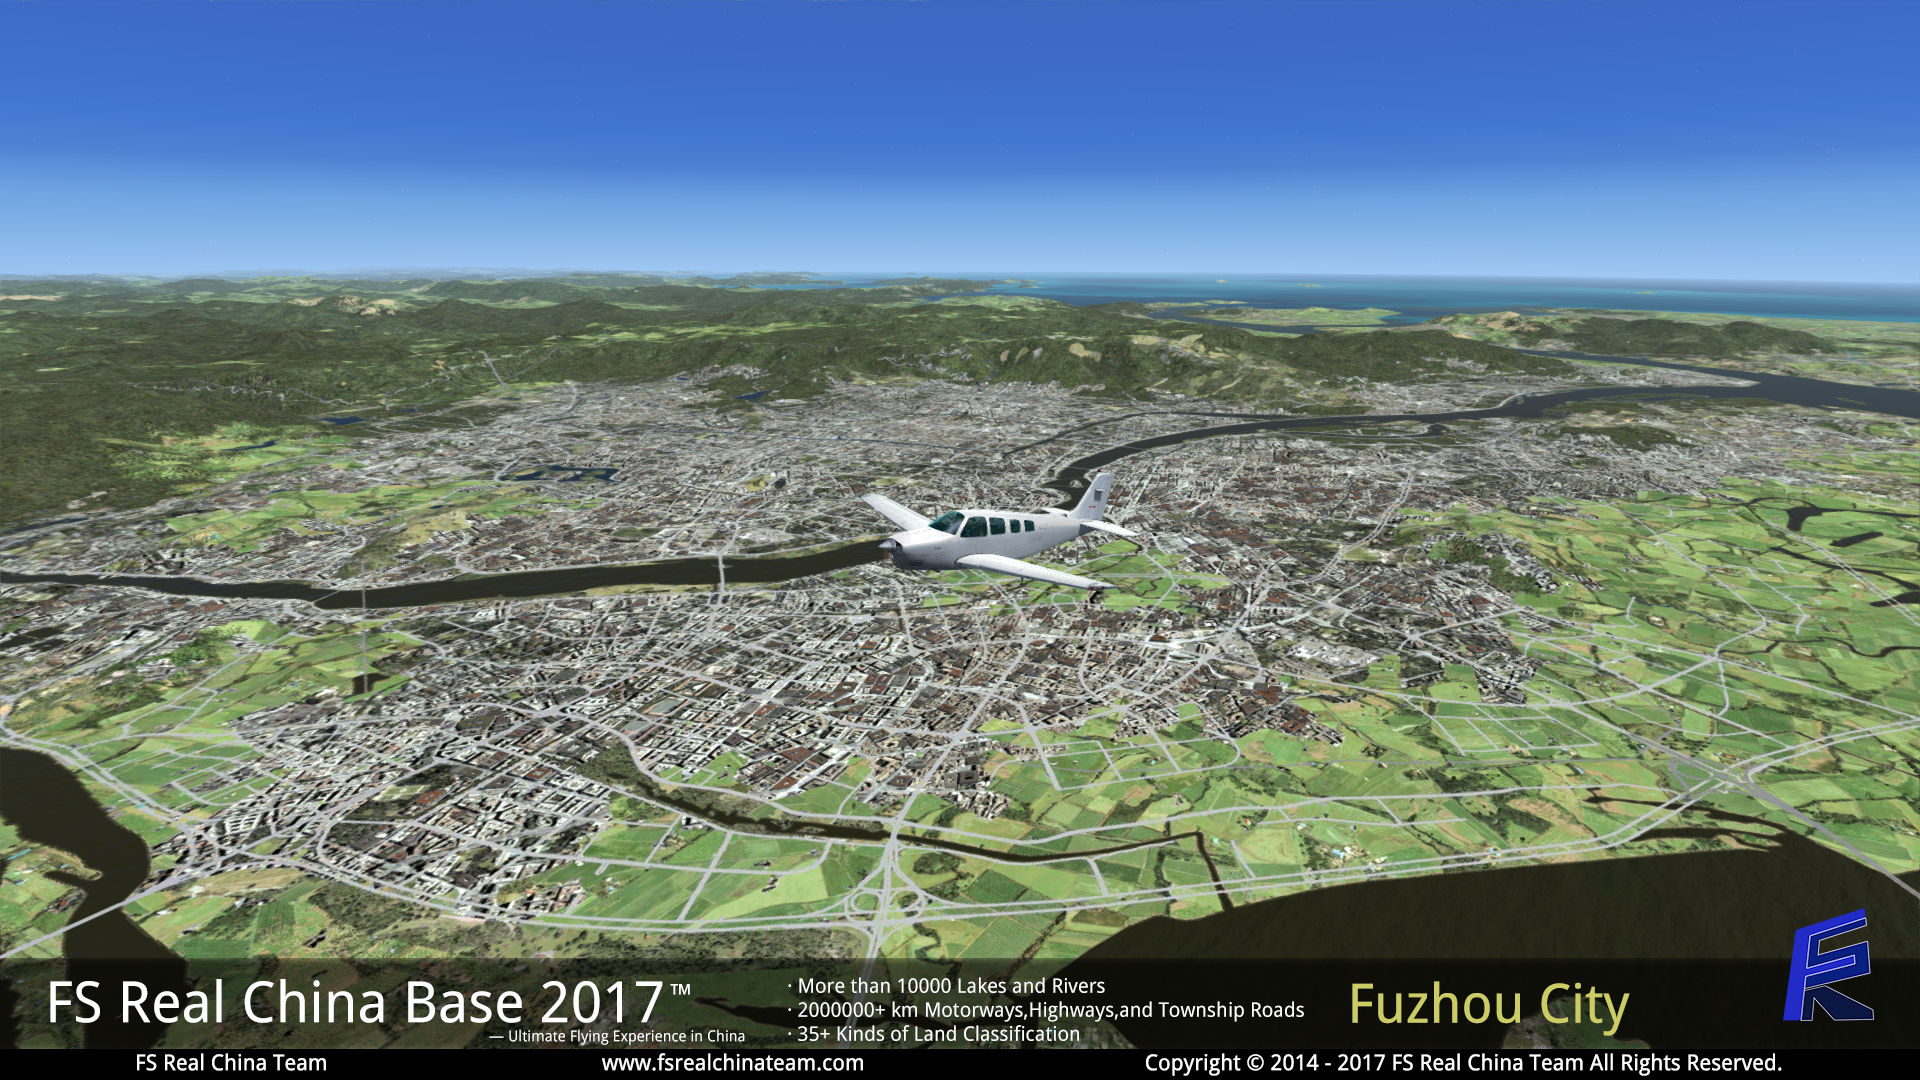 FS REAL CHINA TEAM - FS REAL CHINA BASE 2017 - FSX FSXSE P3D